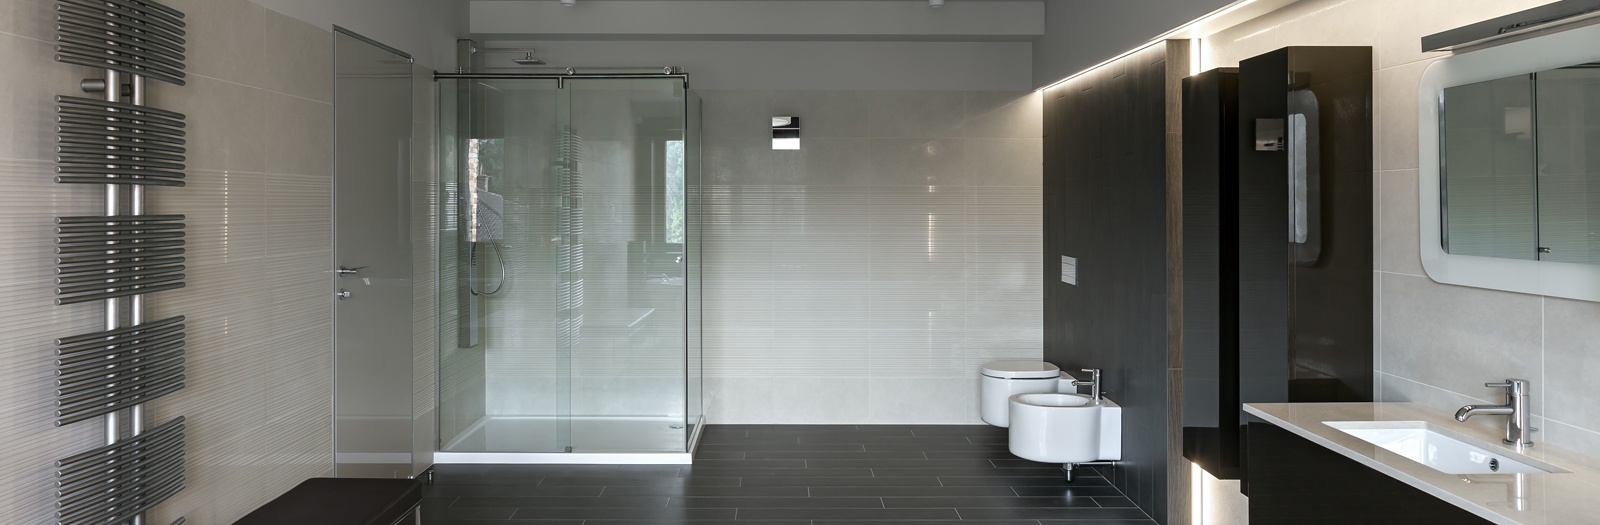 Shower Doors Pro Fit Installations